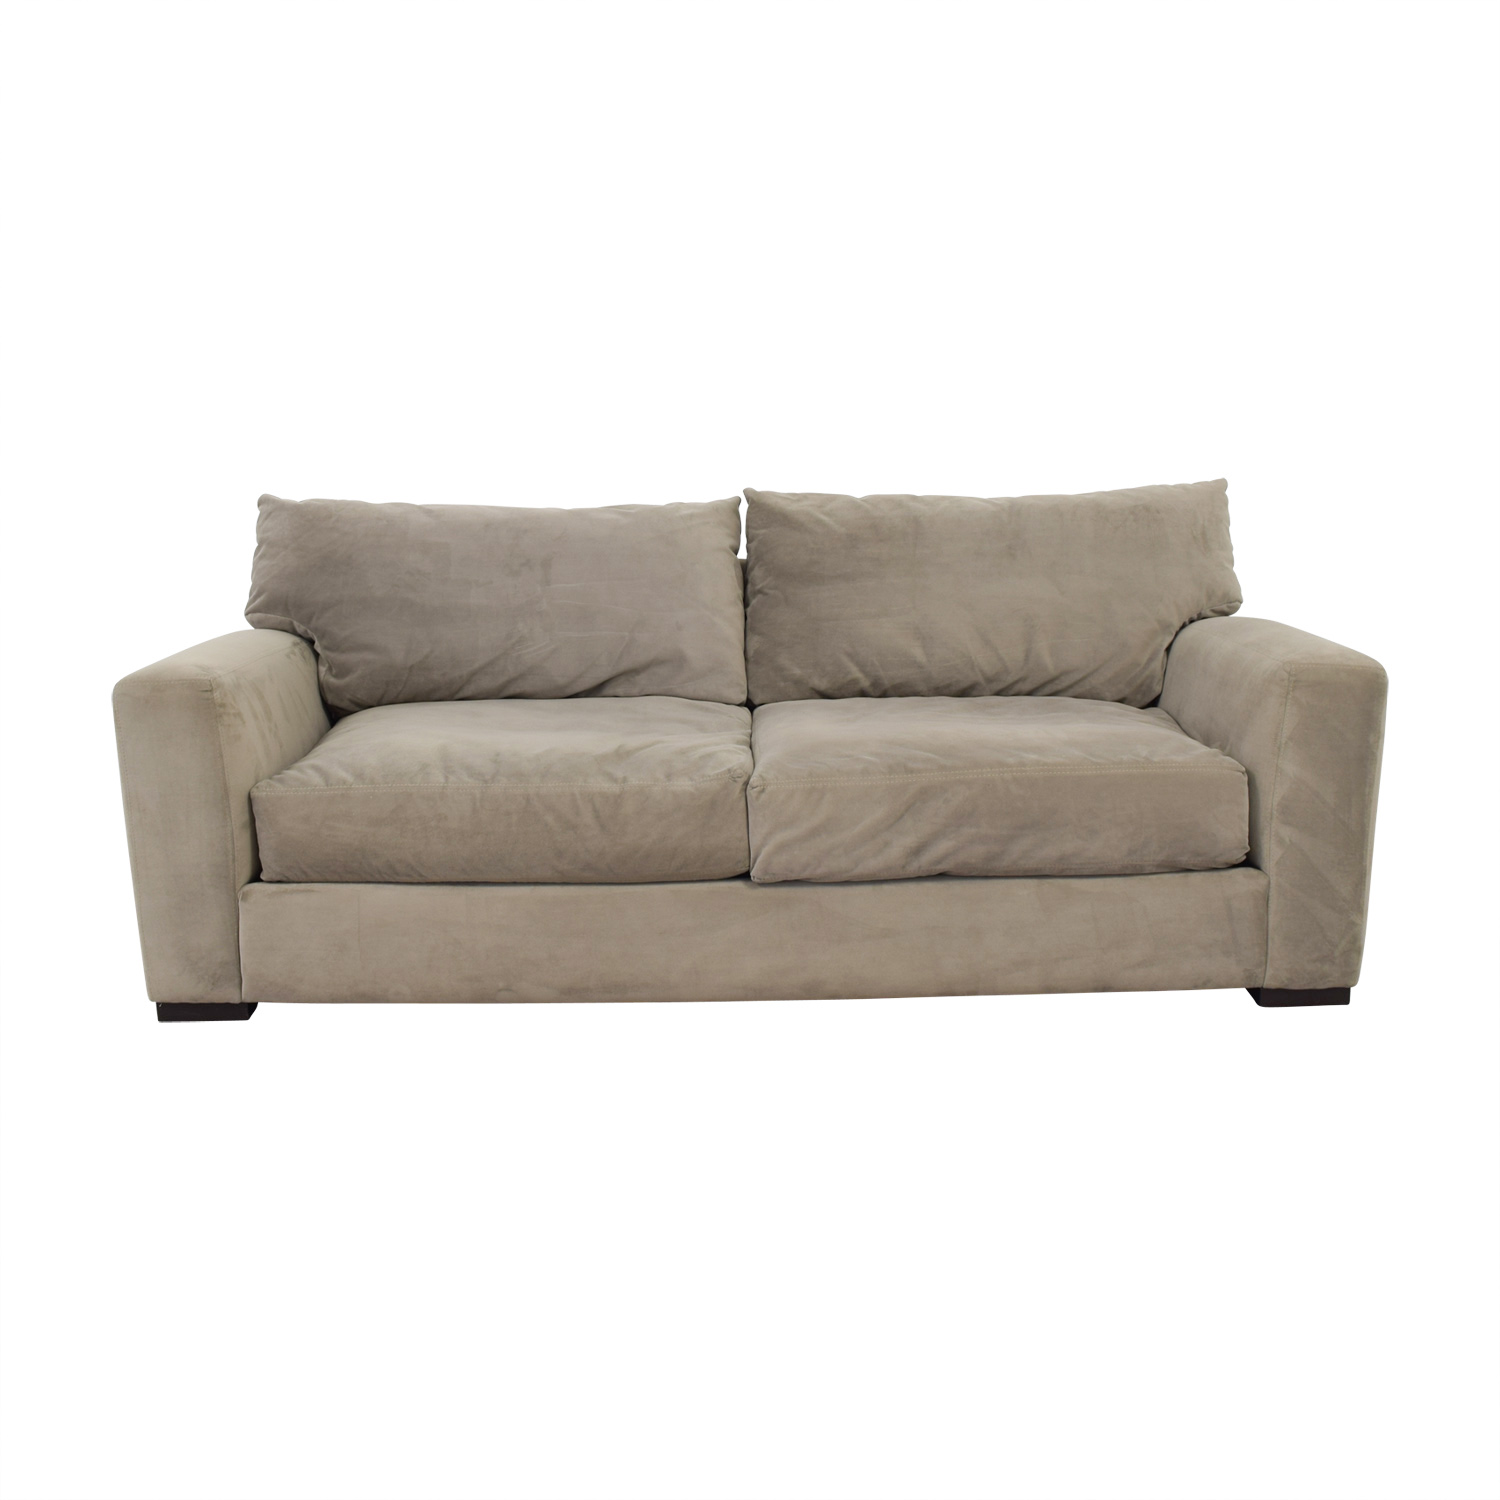 Raymour & Flanigan Raymour & Flanigan Grey Carlin Microfiber Sofa used